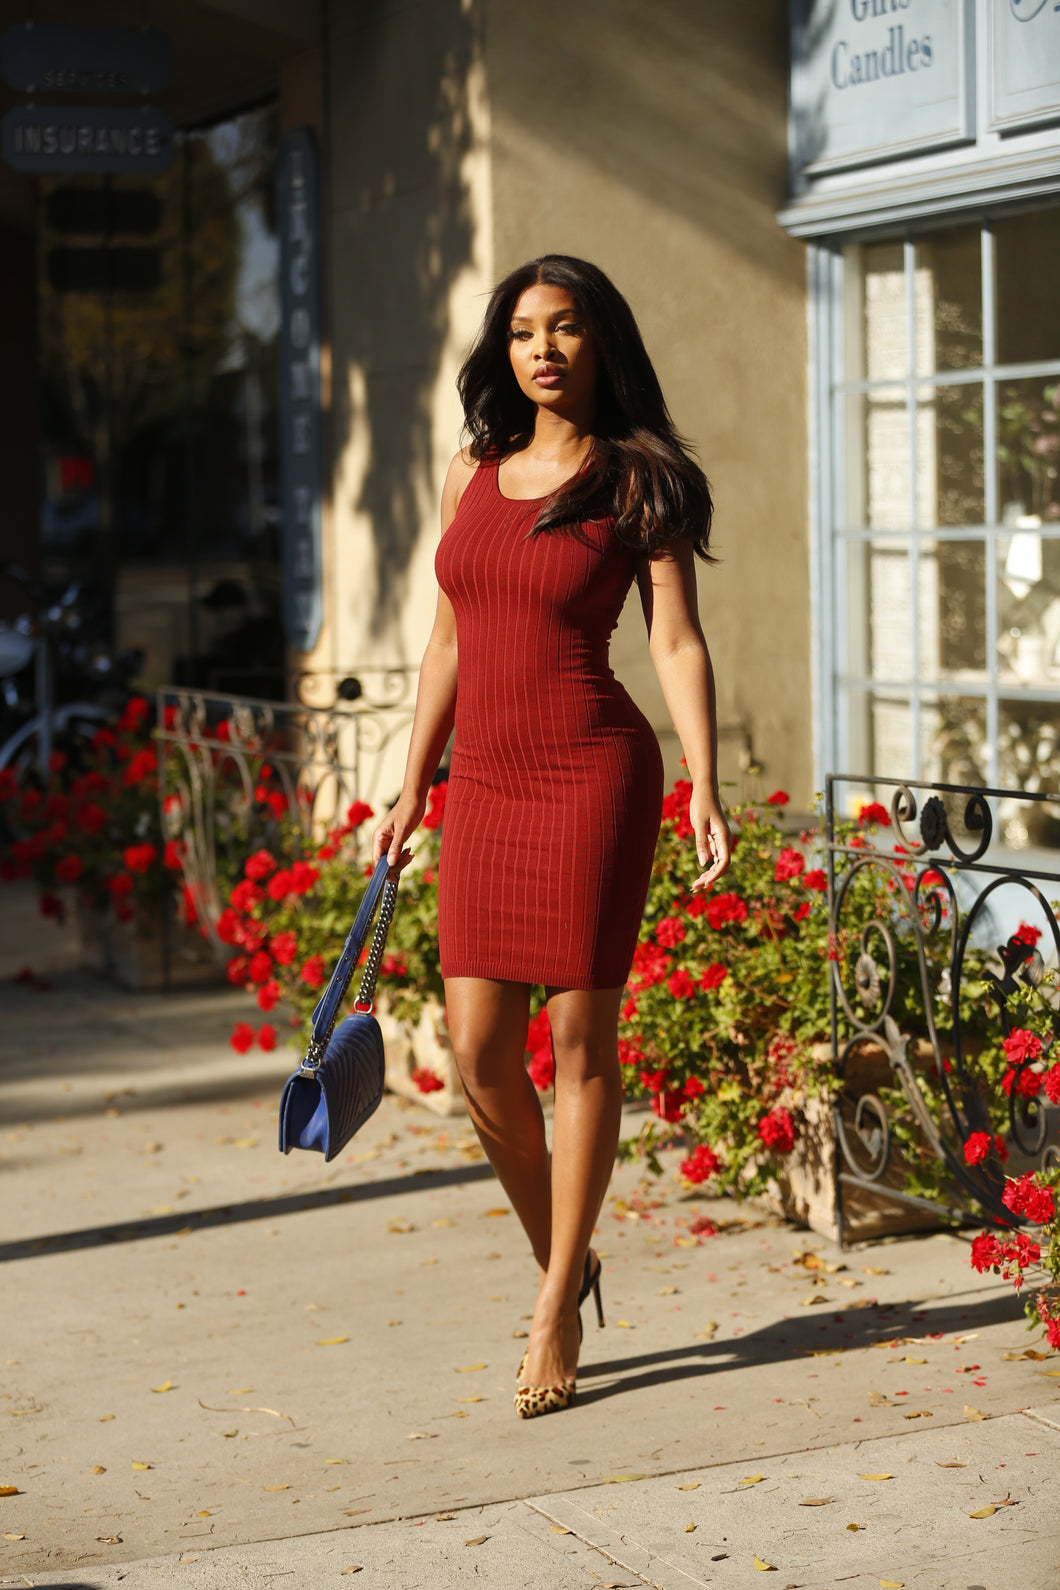 Ribbed Knit Dress - Baby Doll Luxury Hair